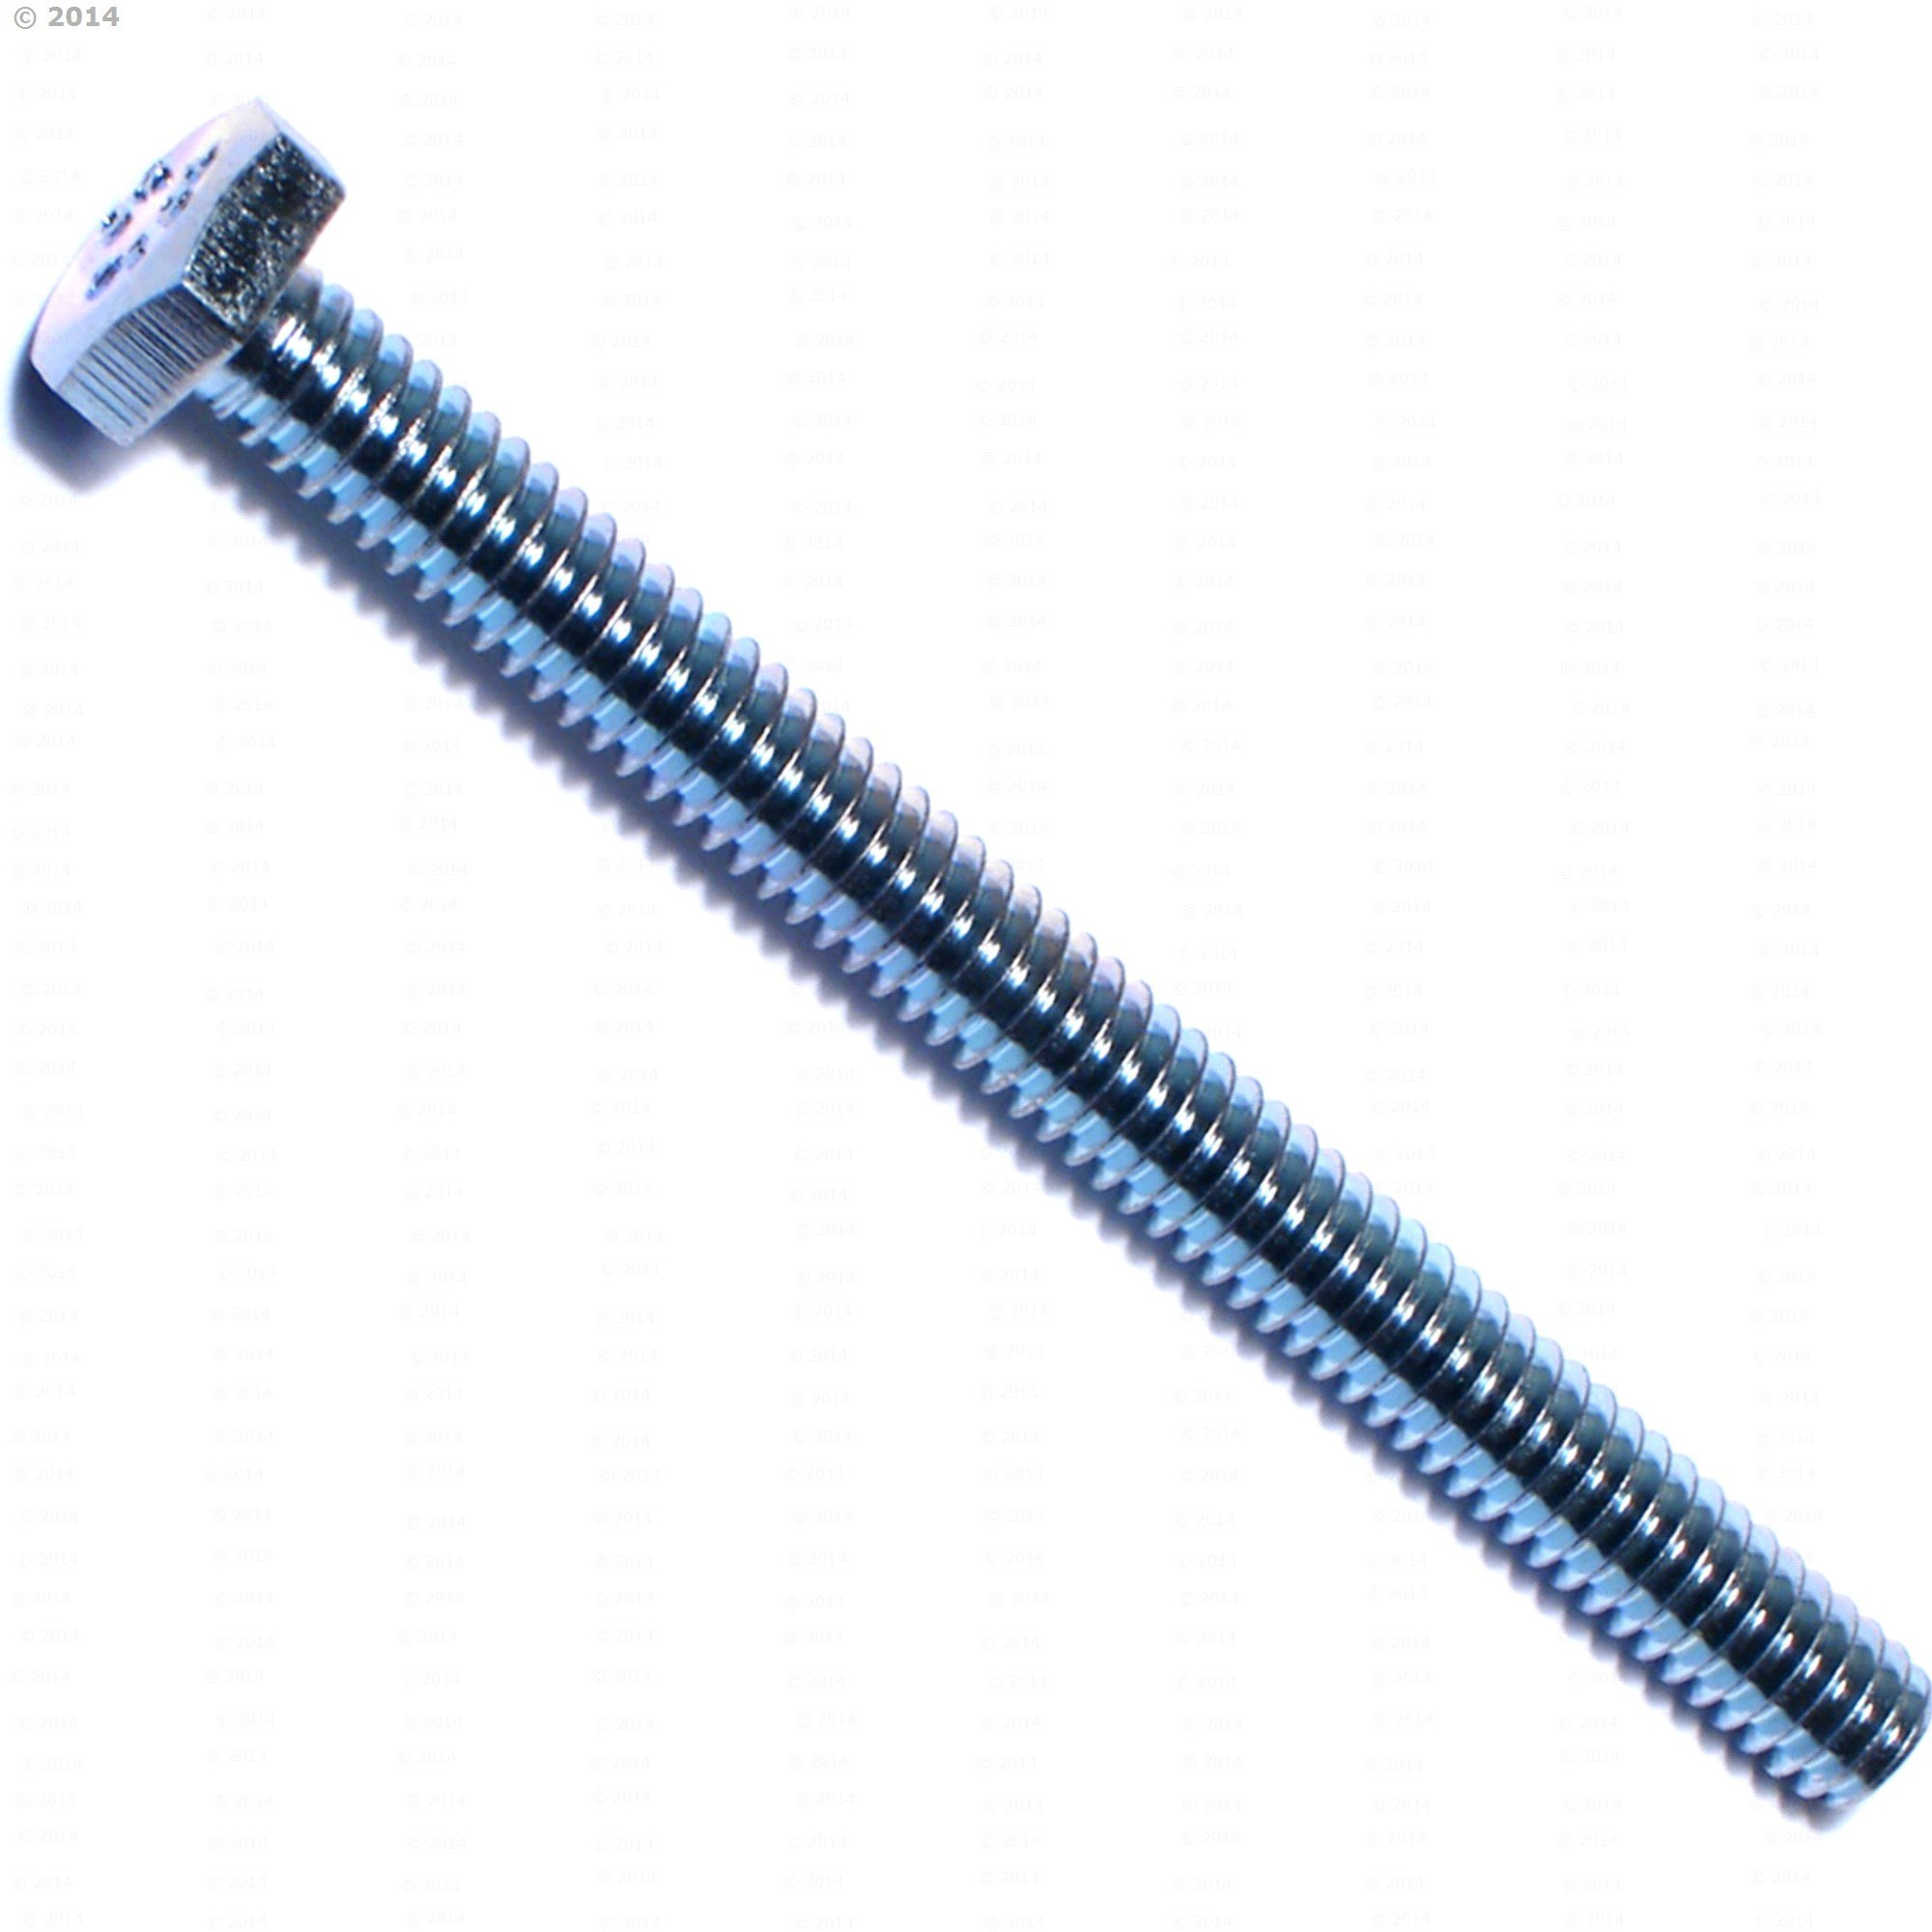 Hard-to-Find Fastener 014973243890 Full Thread Hex Tap Bolts, 1/4-20 x 3, Piece-100